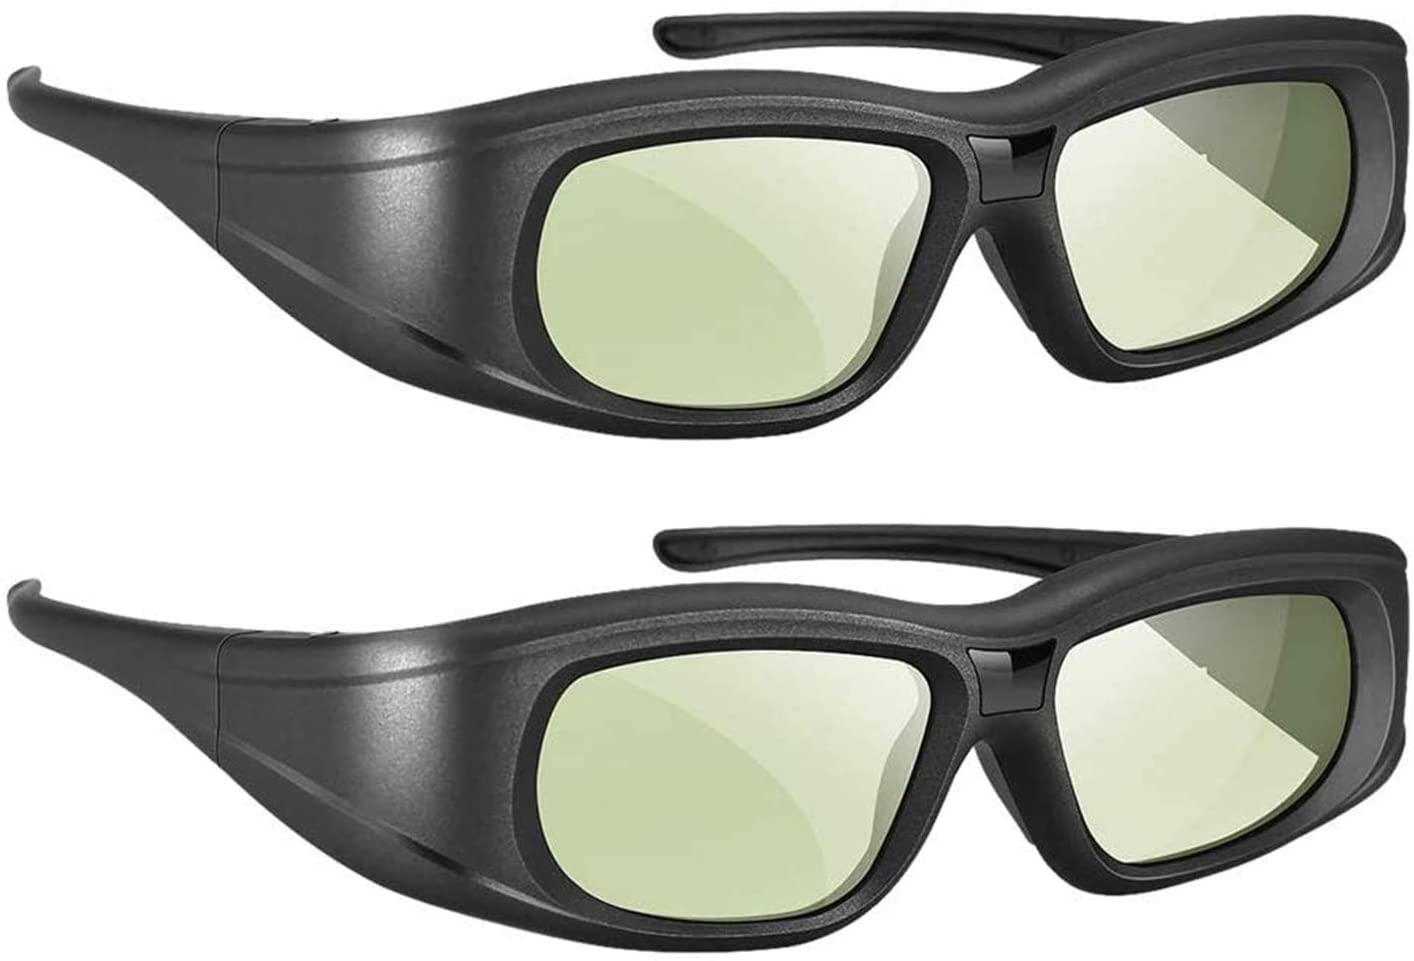 3D Glasses 2 Pack, Rechargeable Active Shutter 3D Glasses Compatible with Epson Sony LCD Projector/Sony Panasonic Samsung 3D Active TV